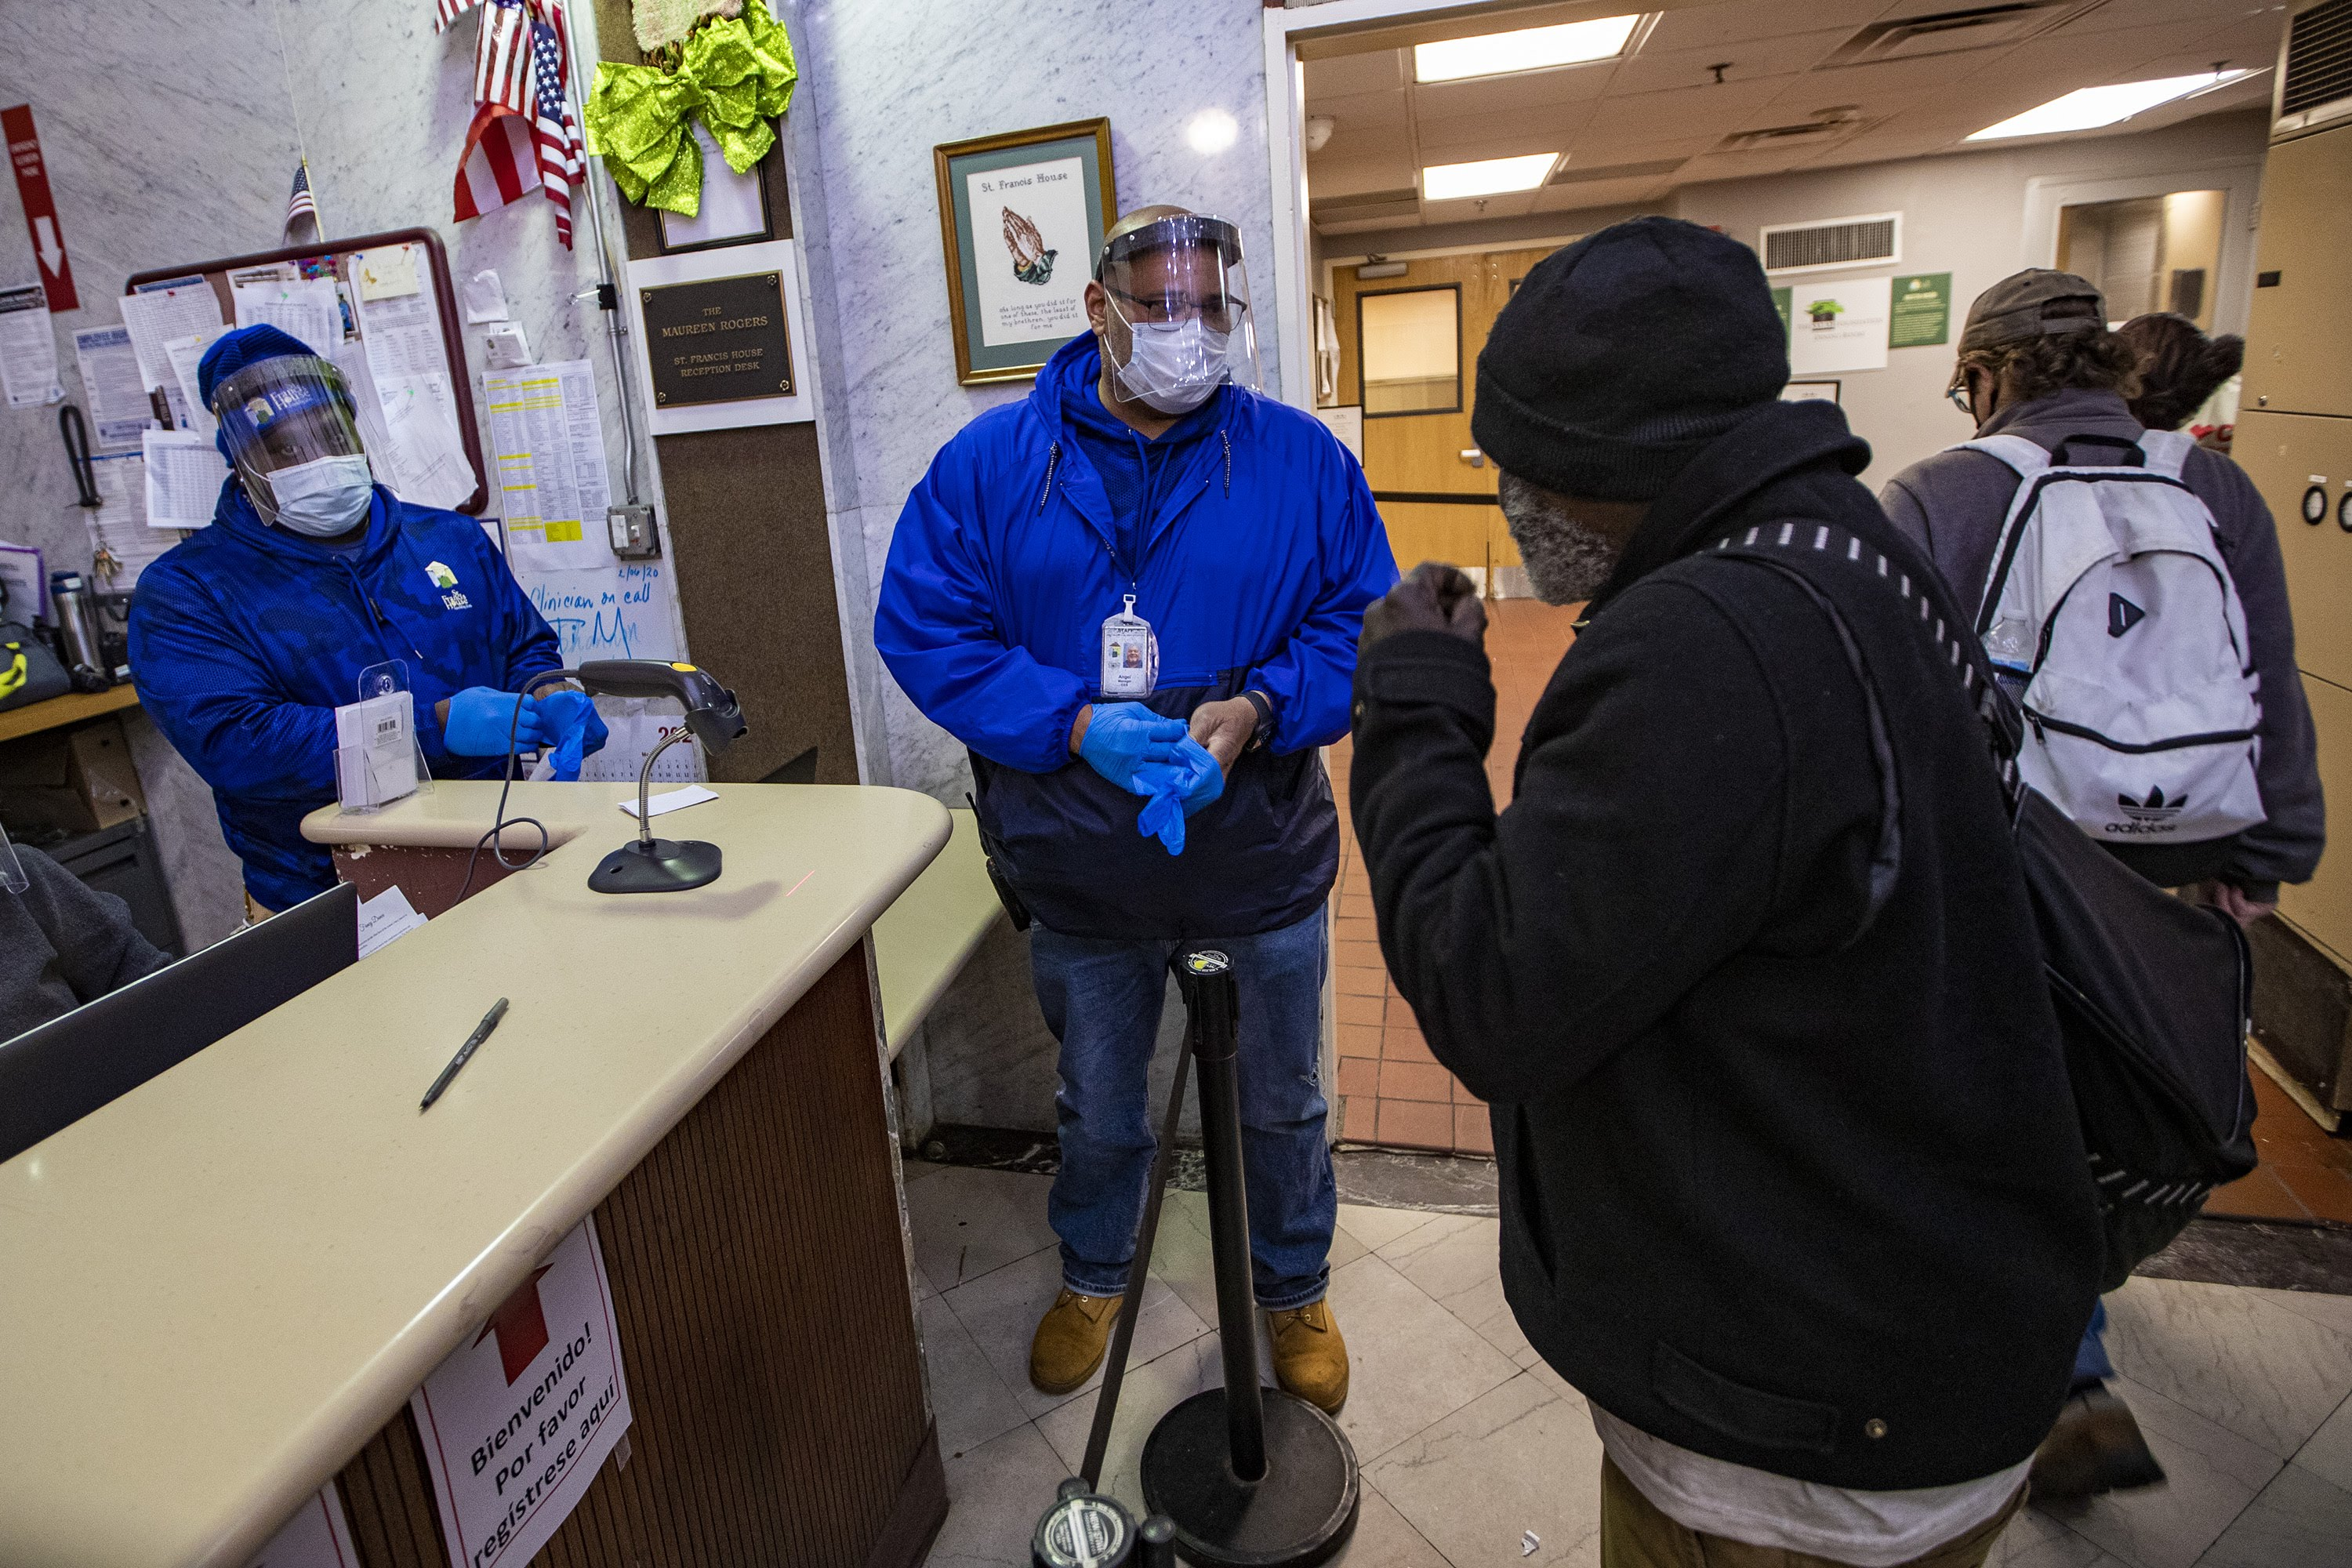 Angel Marte puts on a pair of nitrile gloves before working on some paperwork for a guest entering St. Francis House in Boston. (Jesse Costa/WBUR)